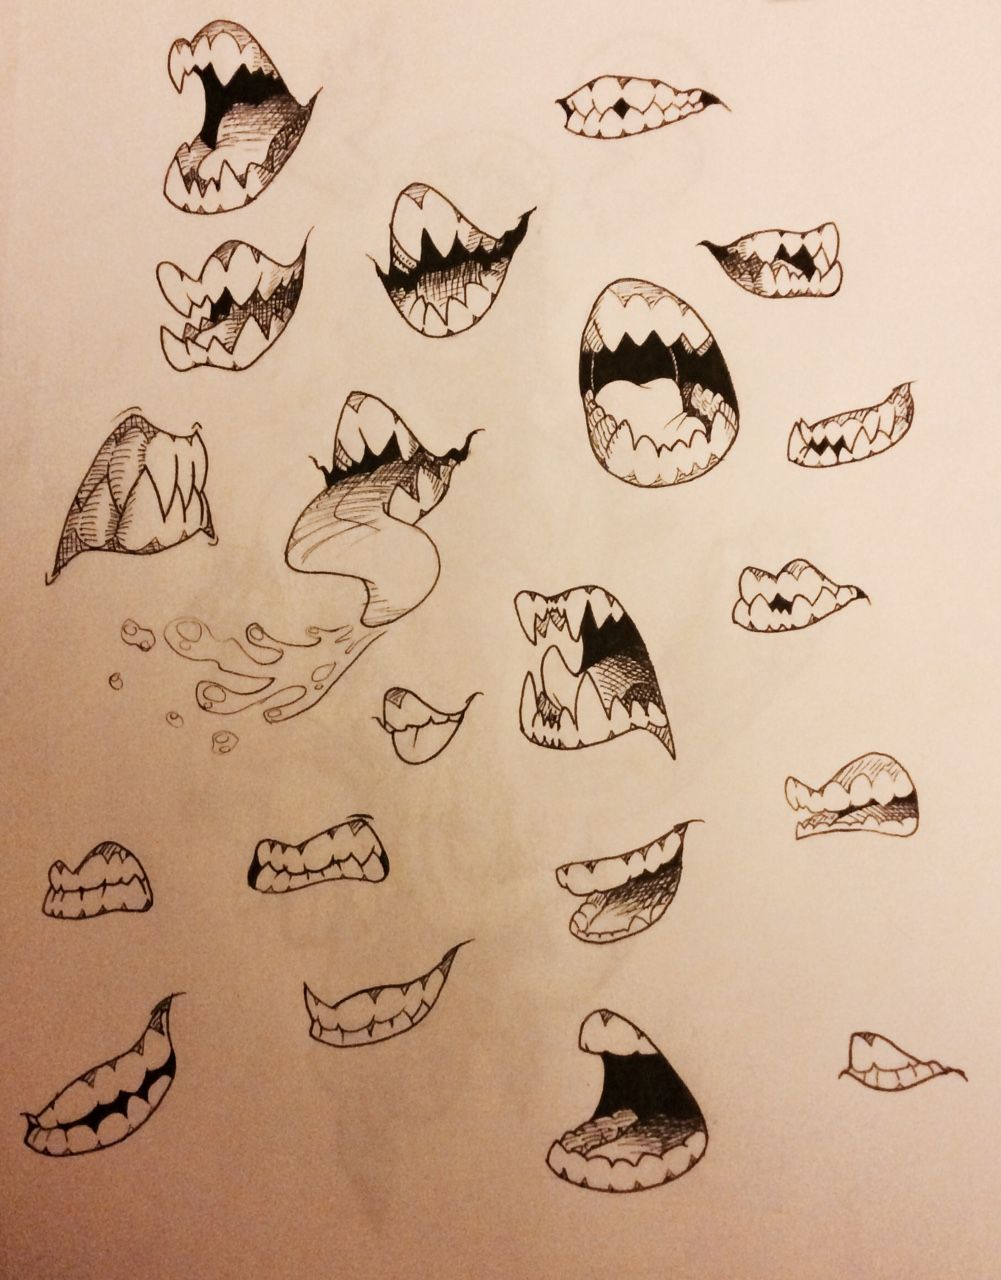 Mouth With Fangs Drawing : mouth, fangs, drawing, Frizzbutt:, Teeth, Study, Focusing, Variations..., Sketches,, Drawing, Expressions